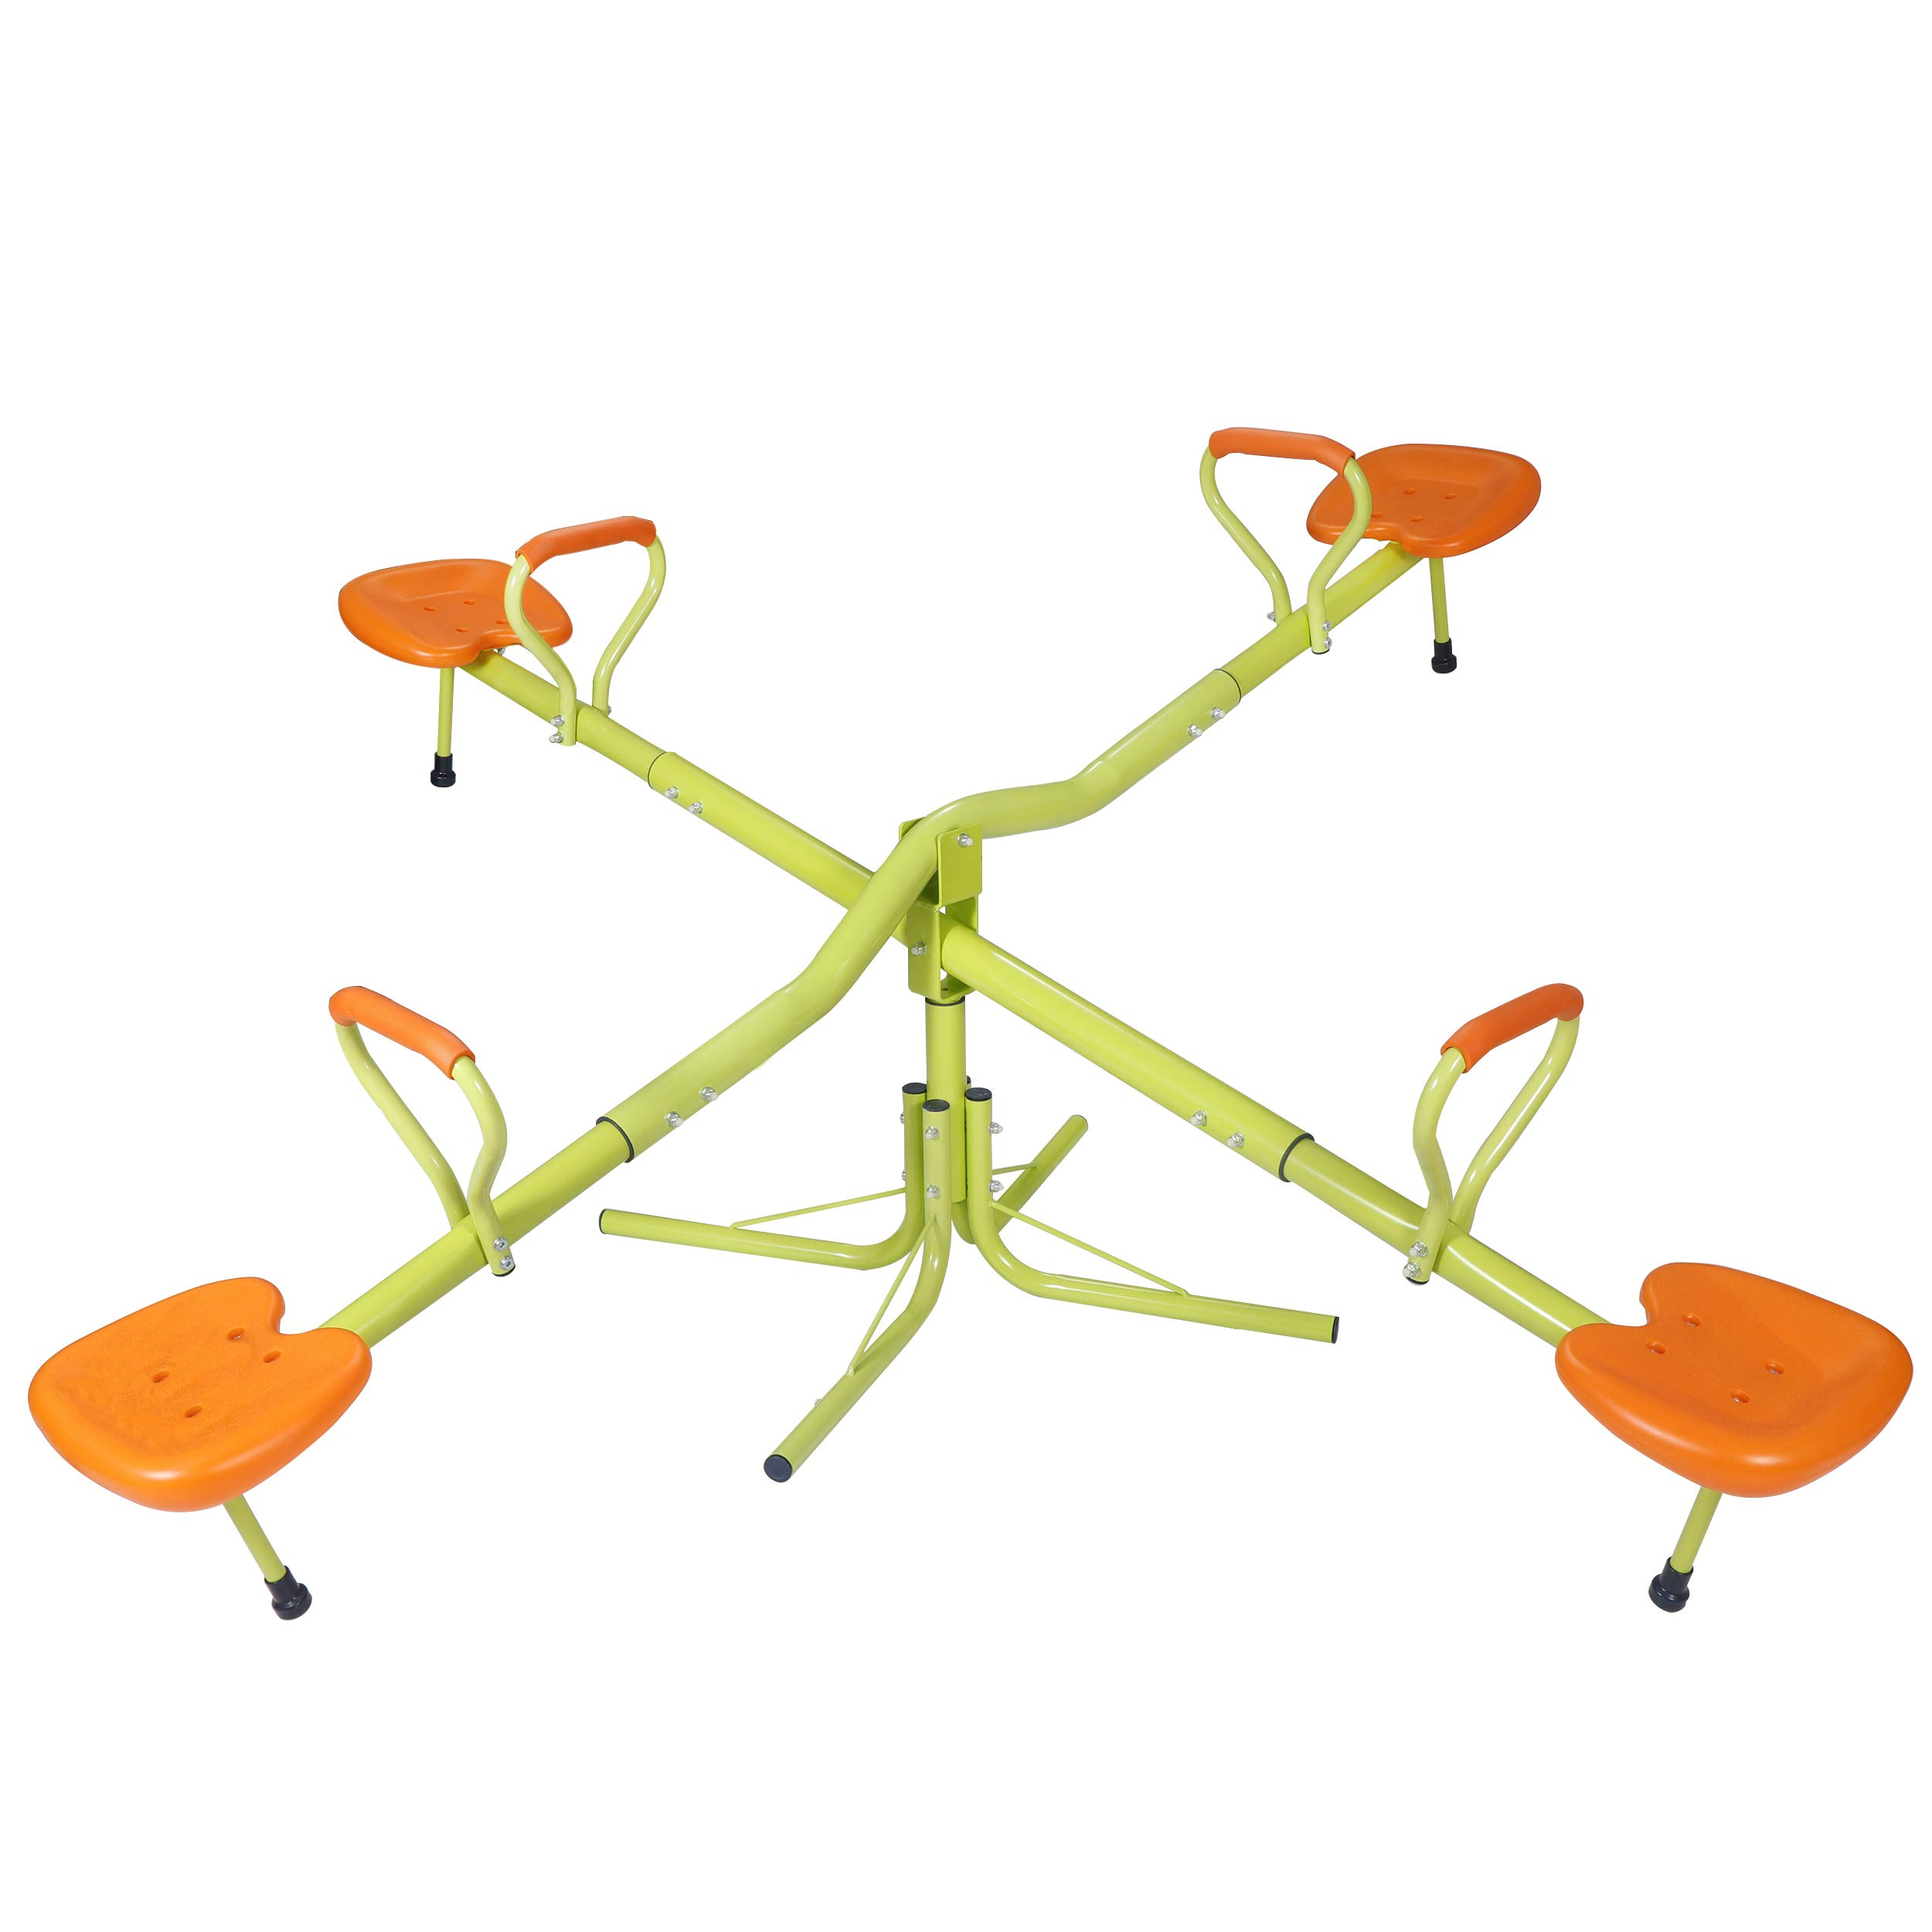 JupiterForce Kids Seesaw Playground Equipment Teeter Totter with 360 Degree Swivel by JupiterForce